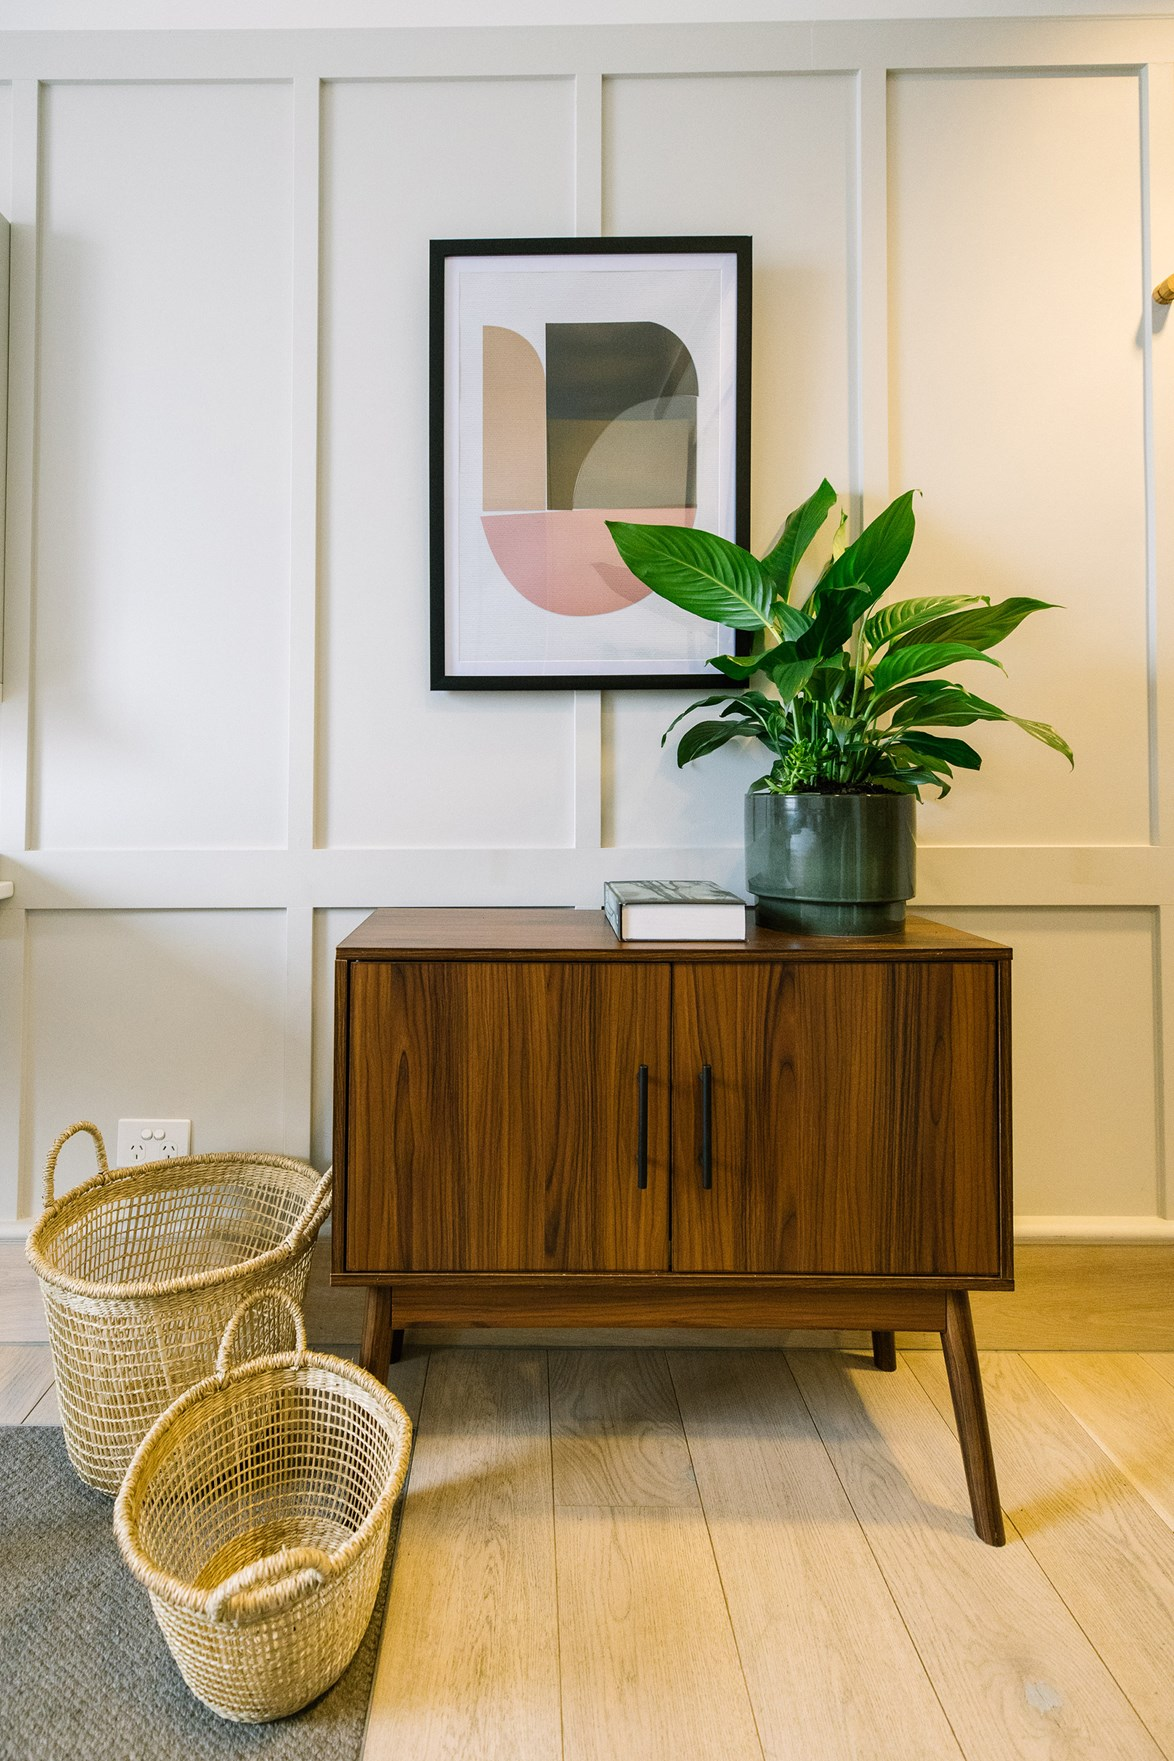 Kmart has embraced mid-century design with items like this Sideboard in a walnut finish, for just $45.